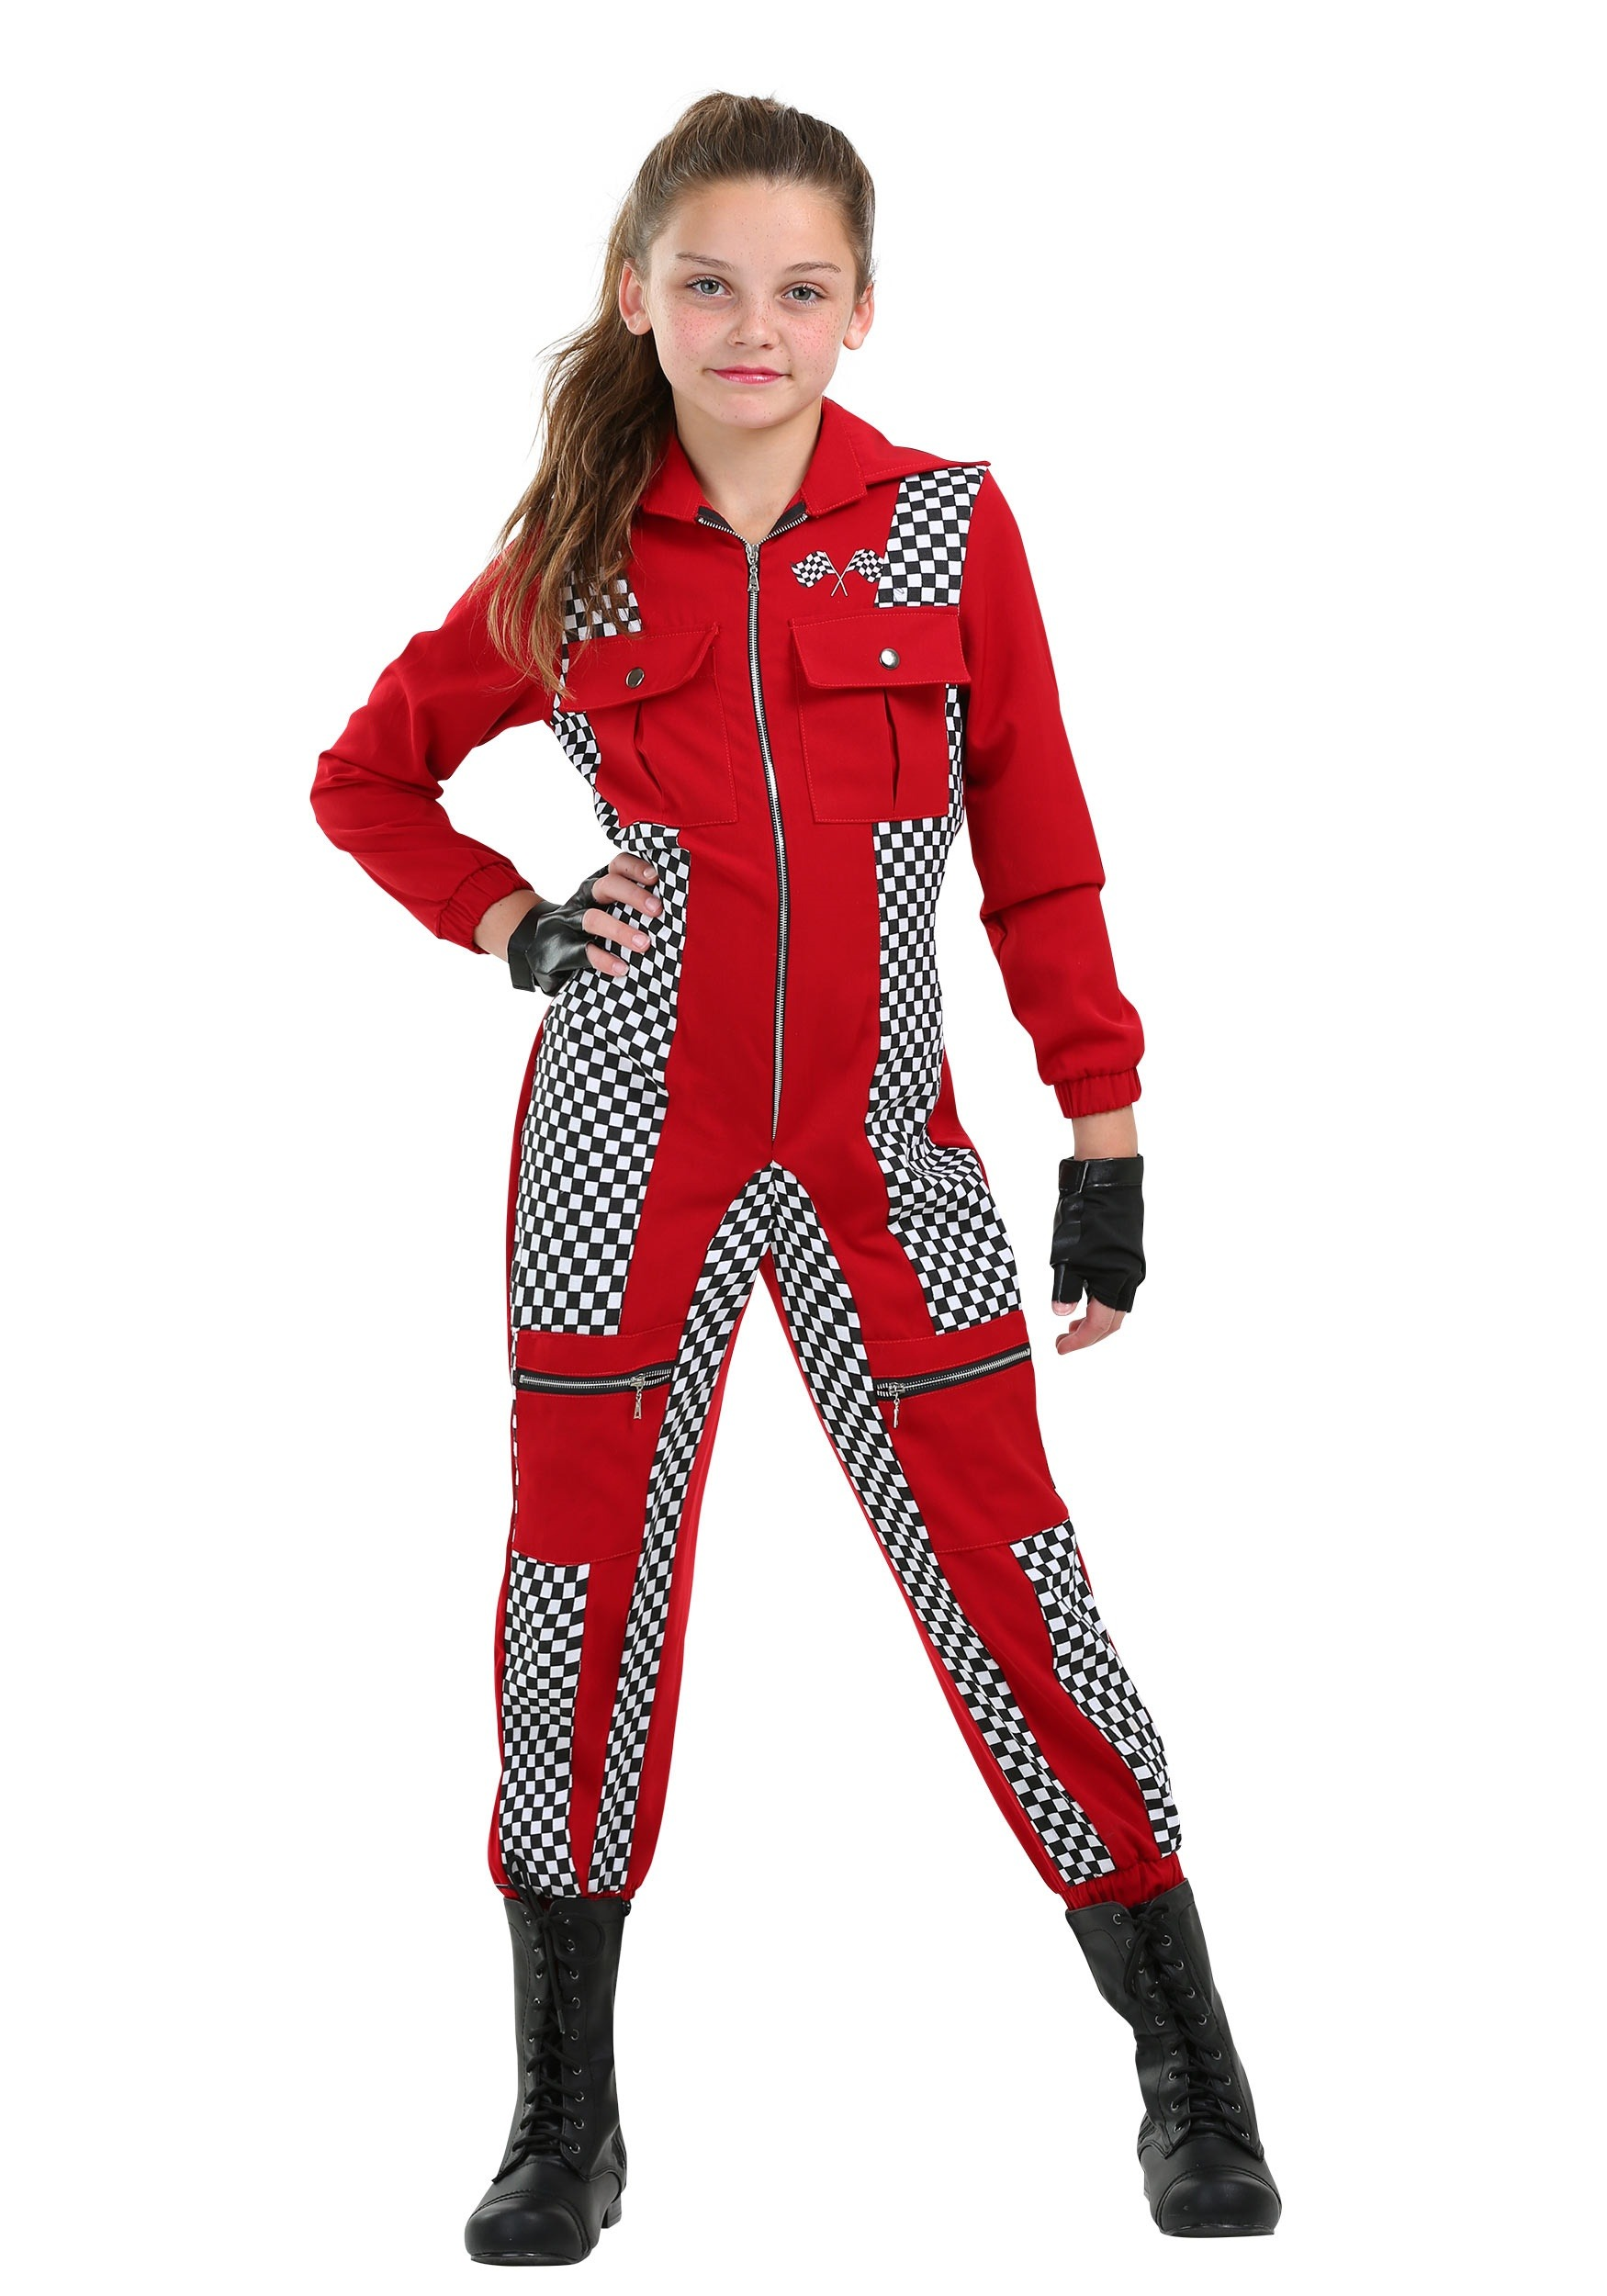 Racer Jumpsuit Costume for Girls | Exclusive | Made By Us